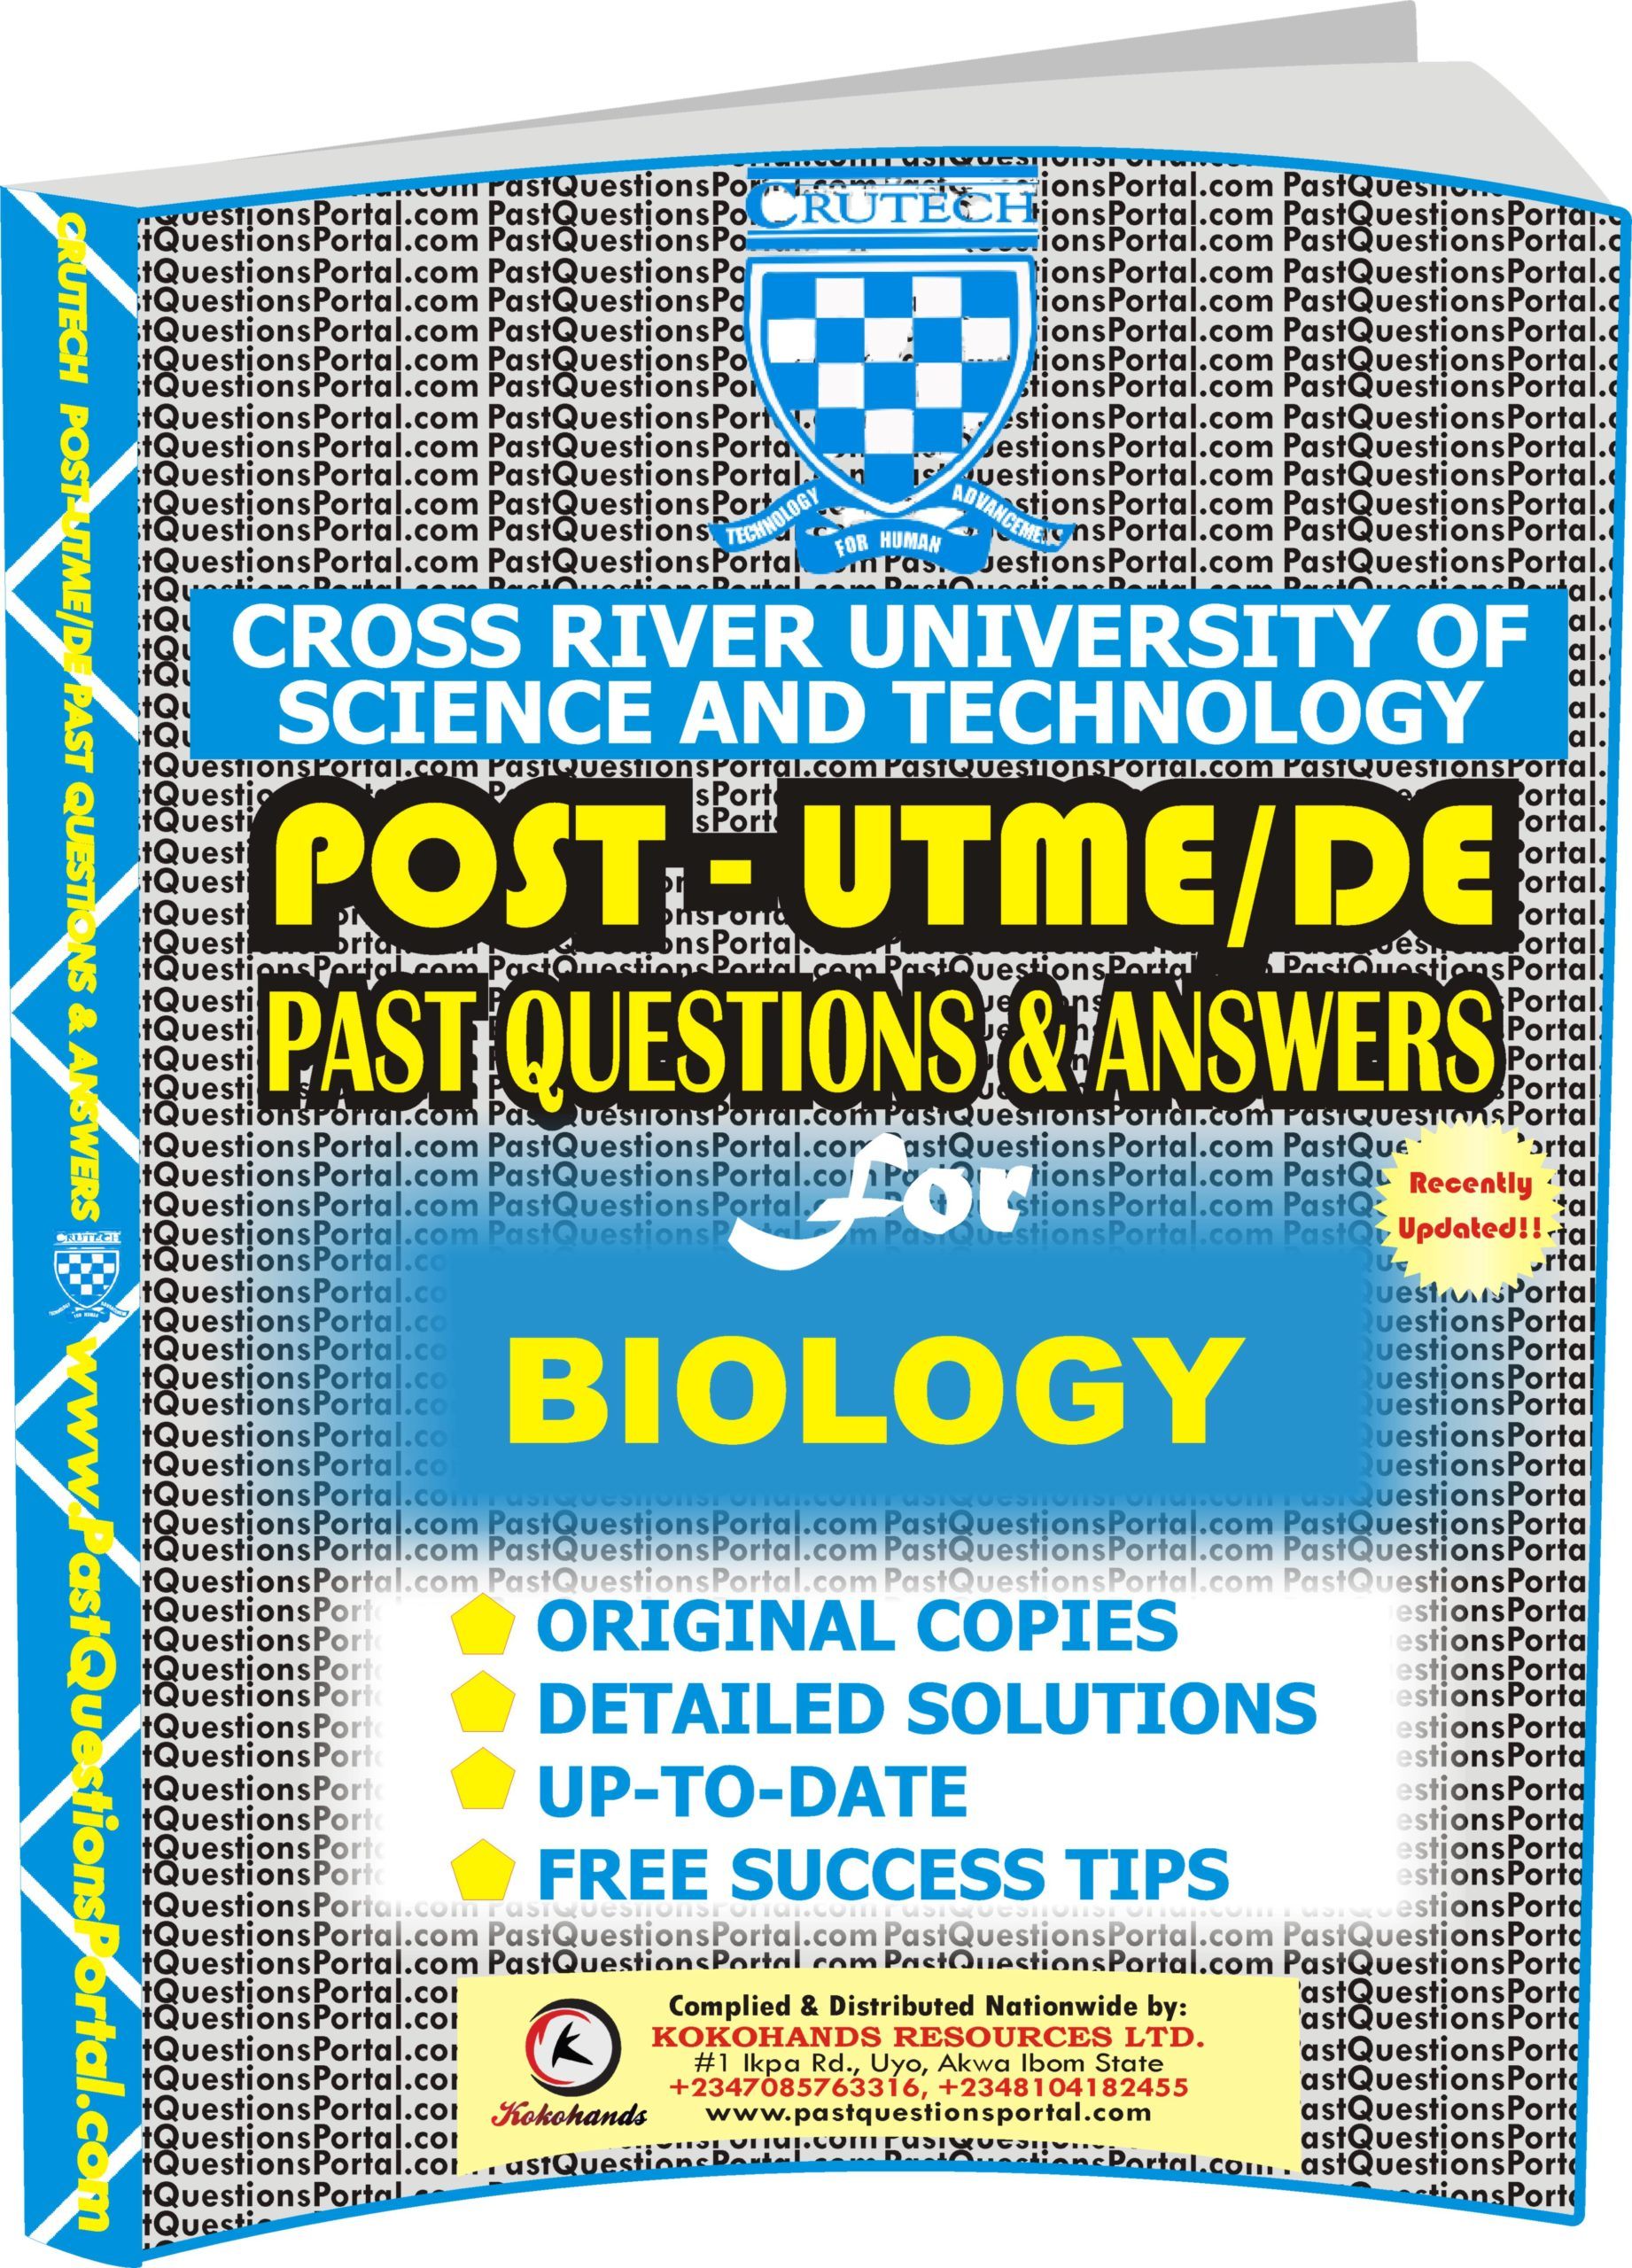 CRUTECH Post UTME Past Questions for BIOLOGY